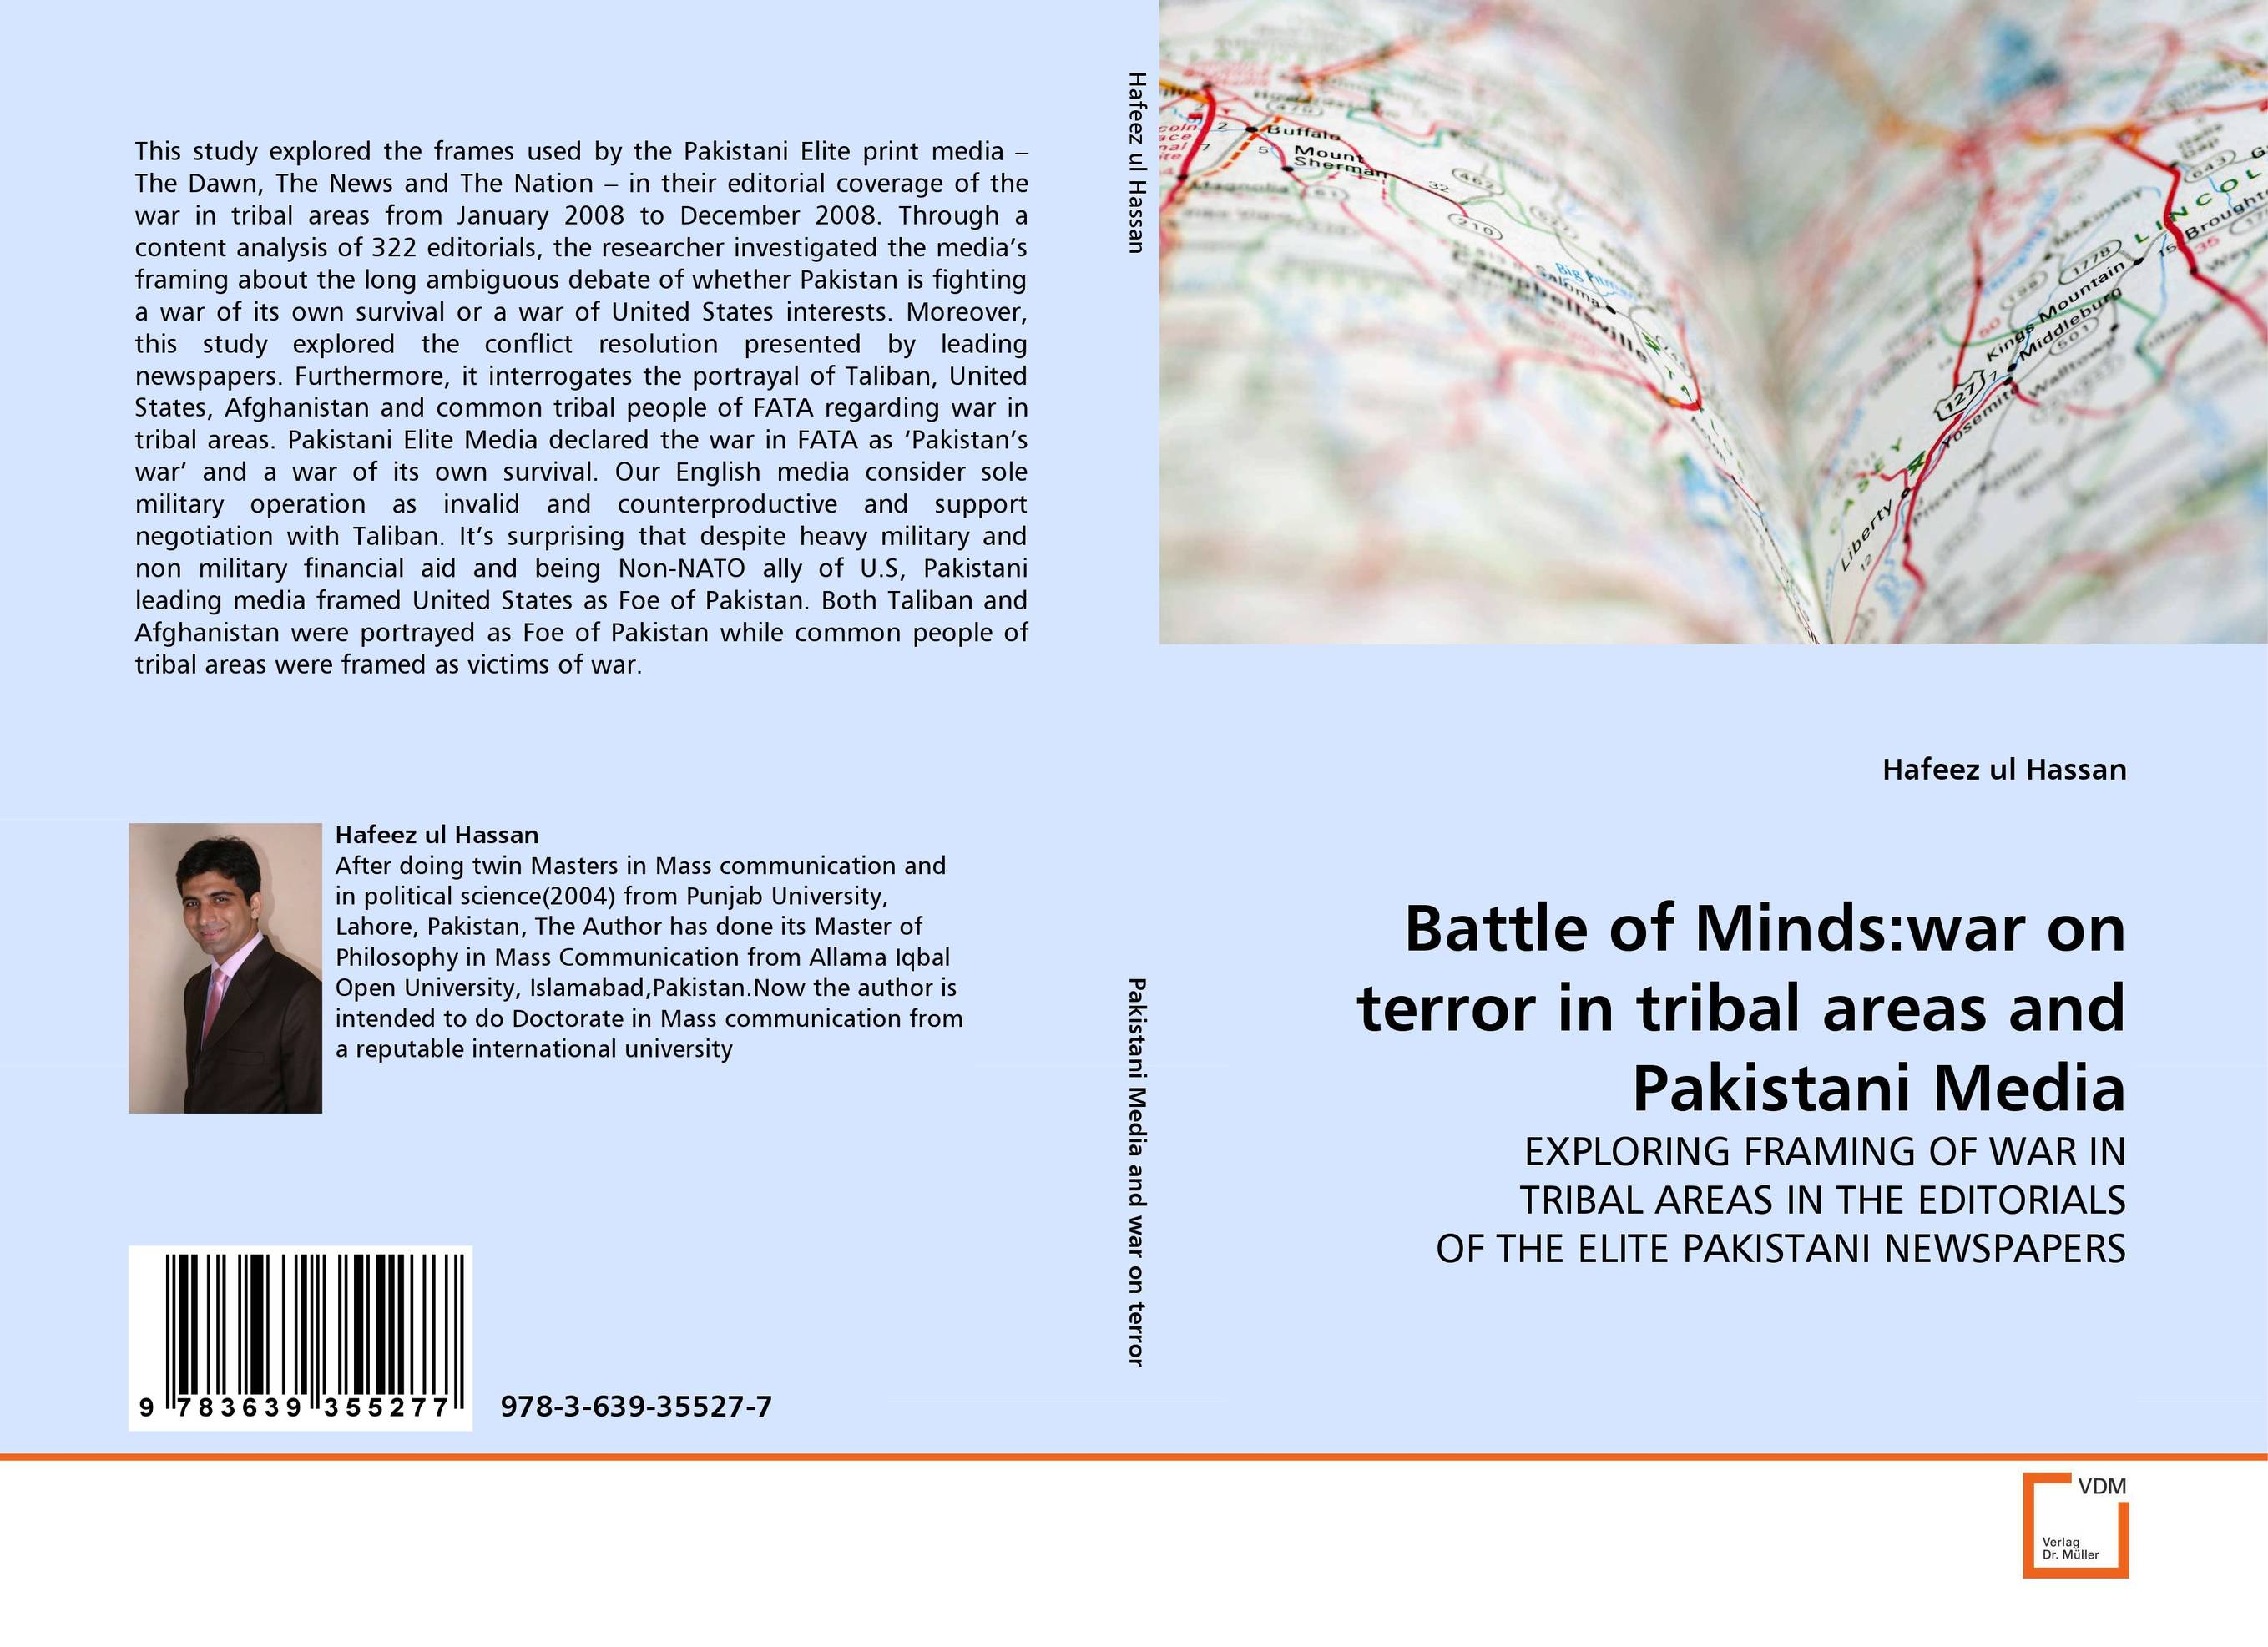 Battle of Minds:war on terror in tribal areas and Pakistani Media the long war